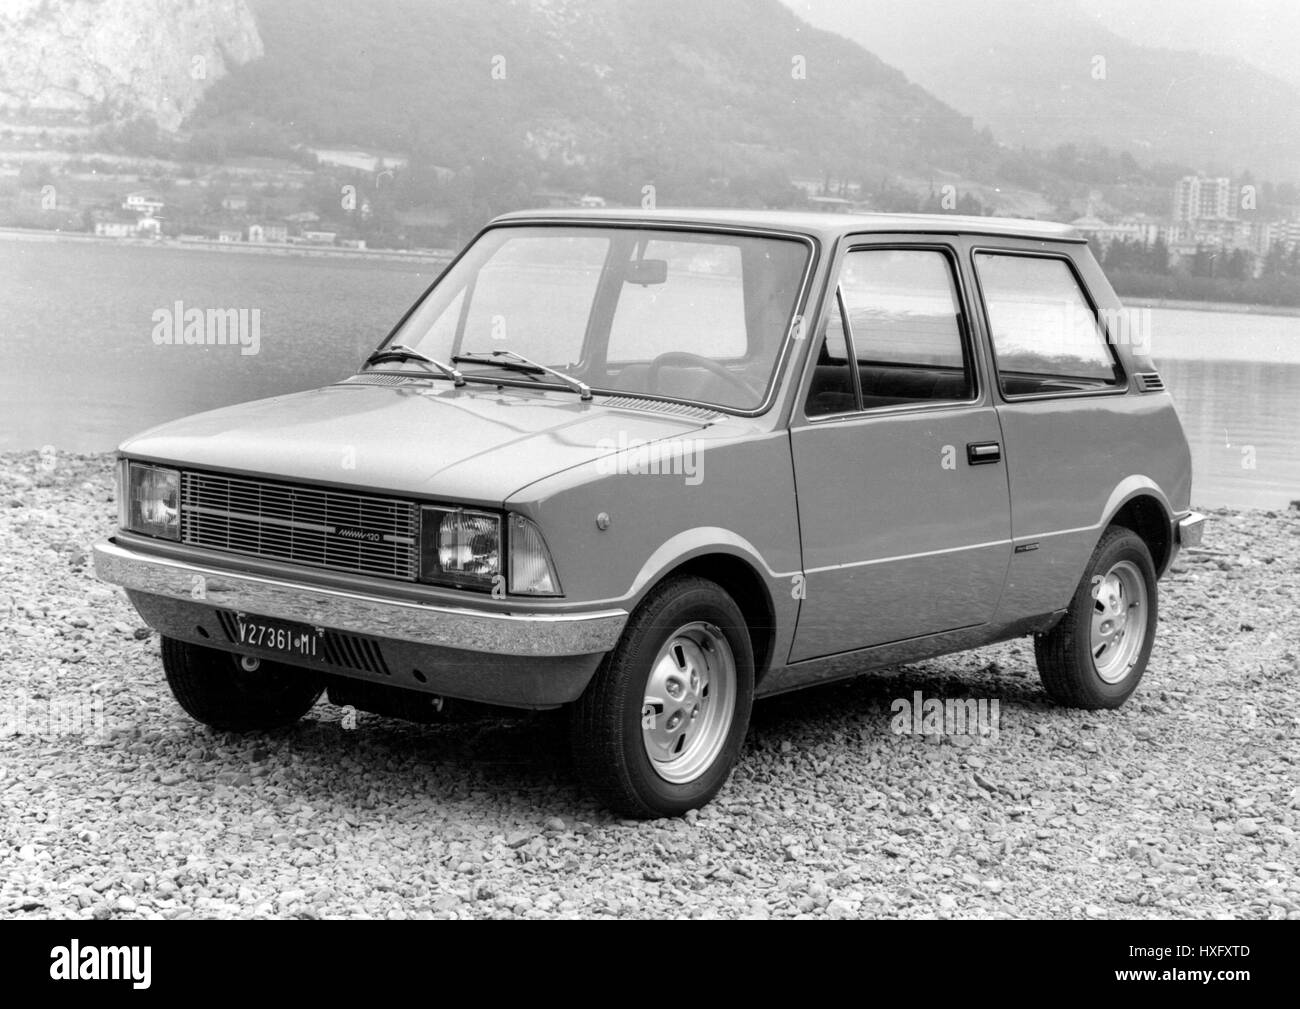 1974 Innocenti Mini 120 - Stock Image